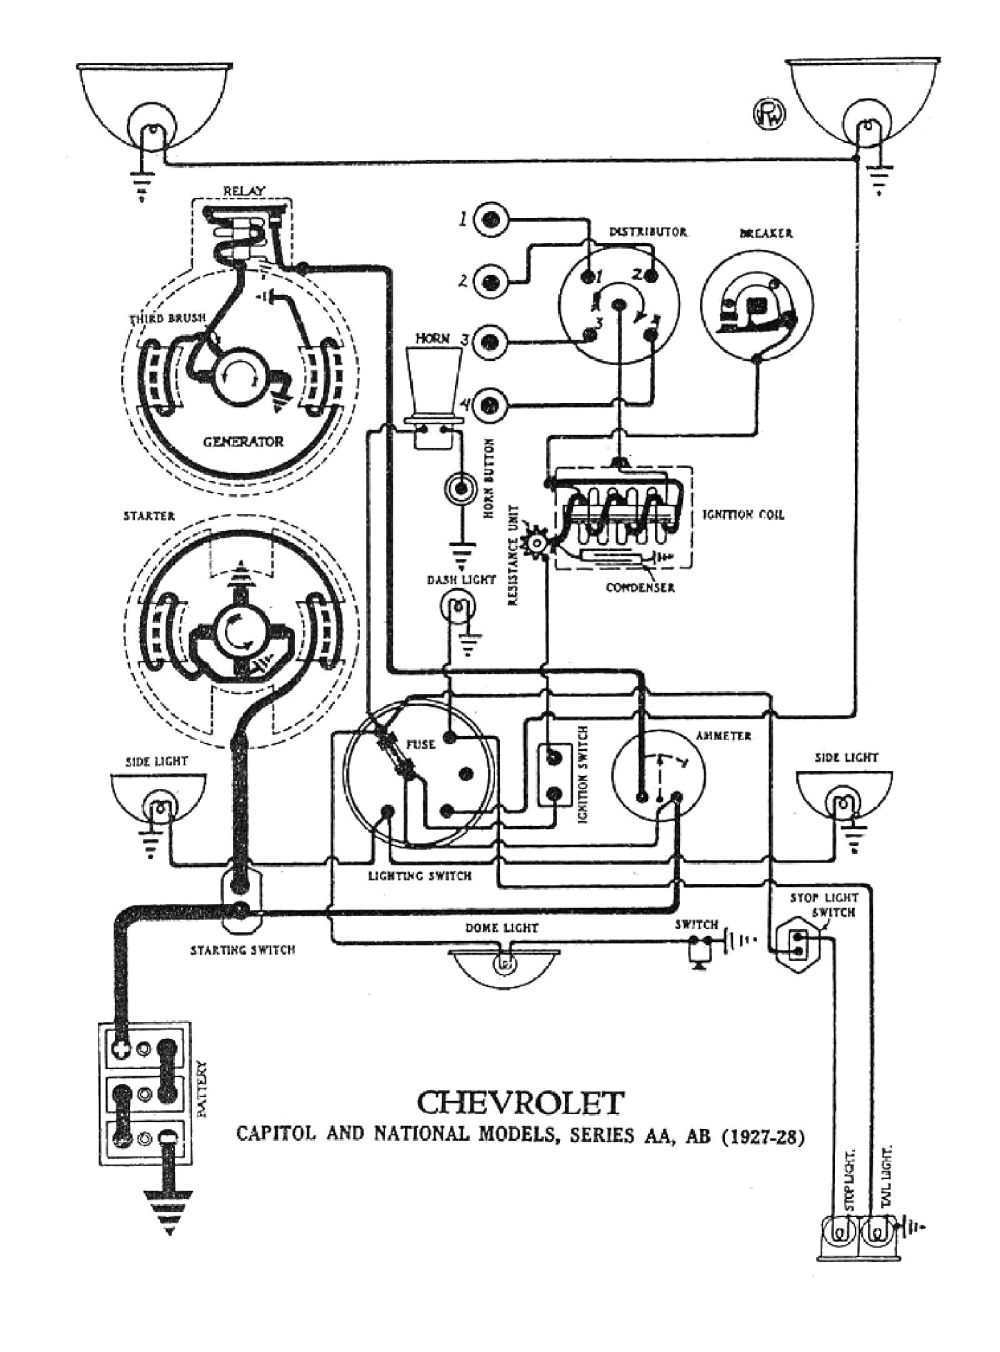 medium resolution of charging circuit diagram for the 1940 49 buick all models wiring ignition circuit diagram for the 1940 47 cadillac all models